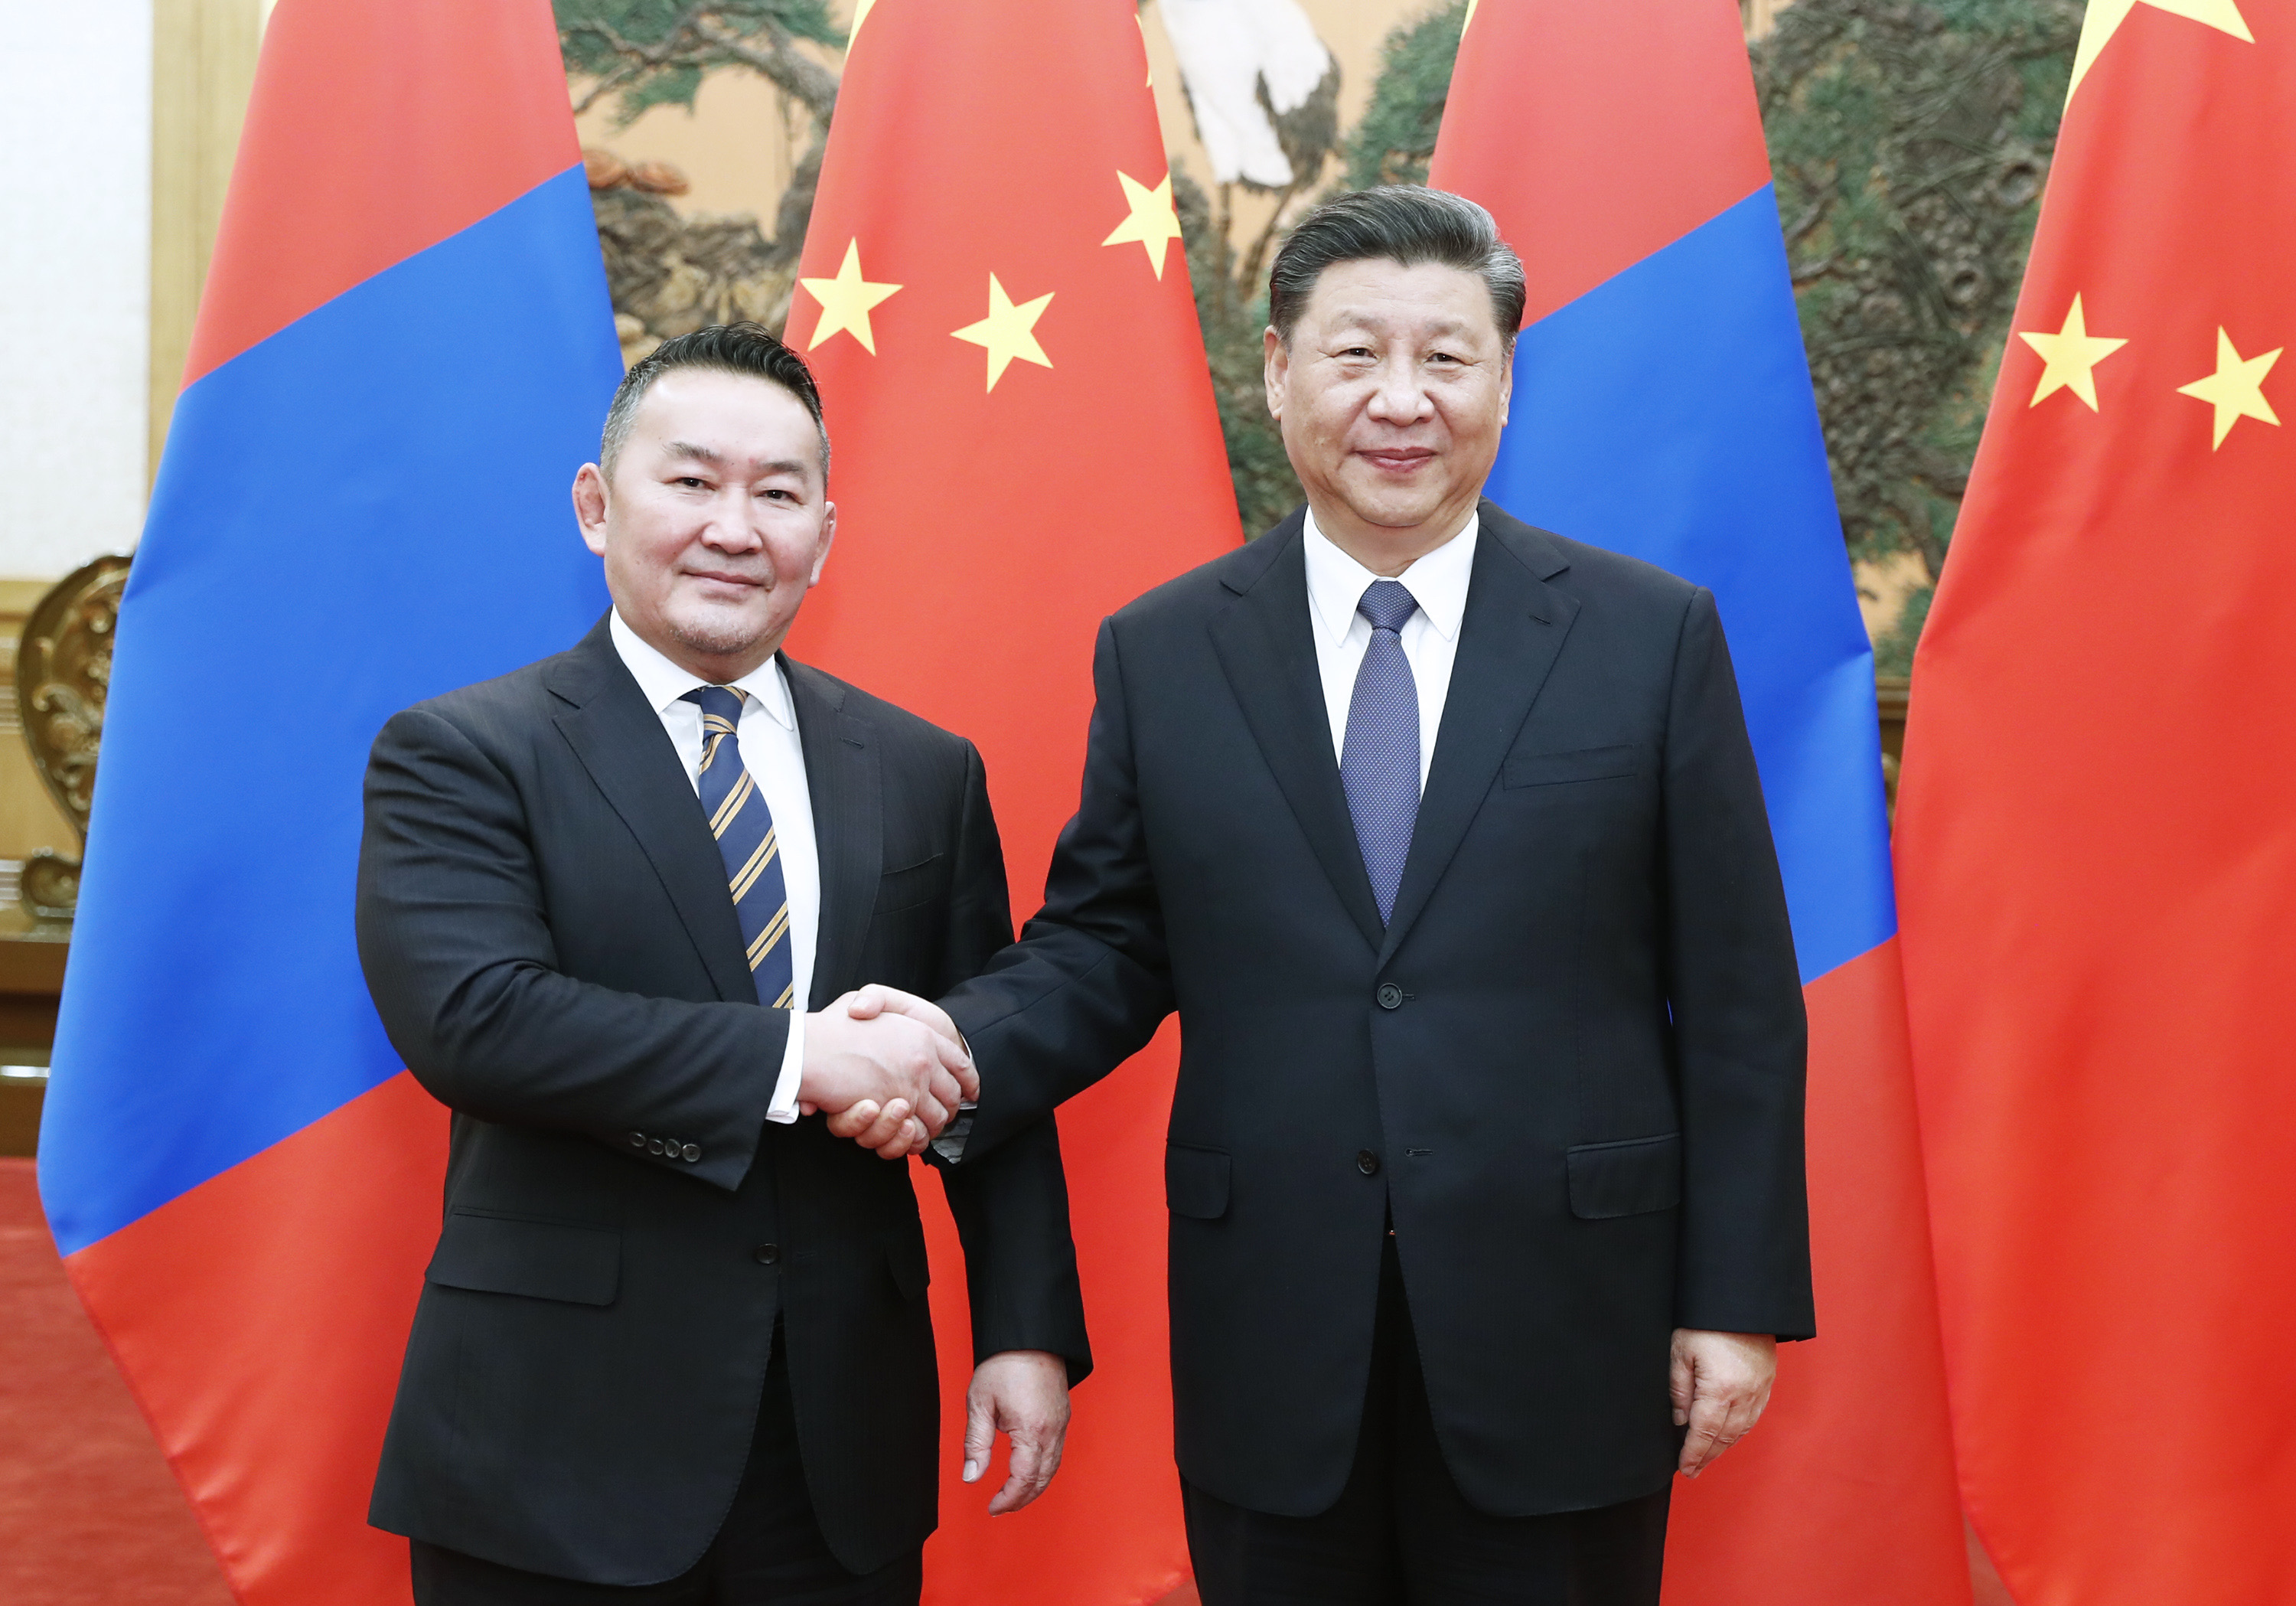 Xi says China, Mongolia help each other in face of difficulties